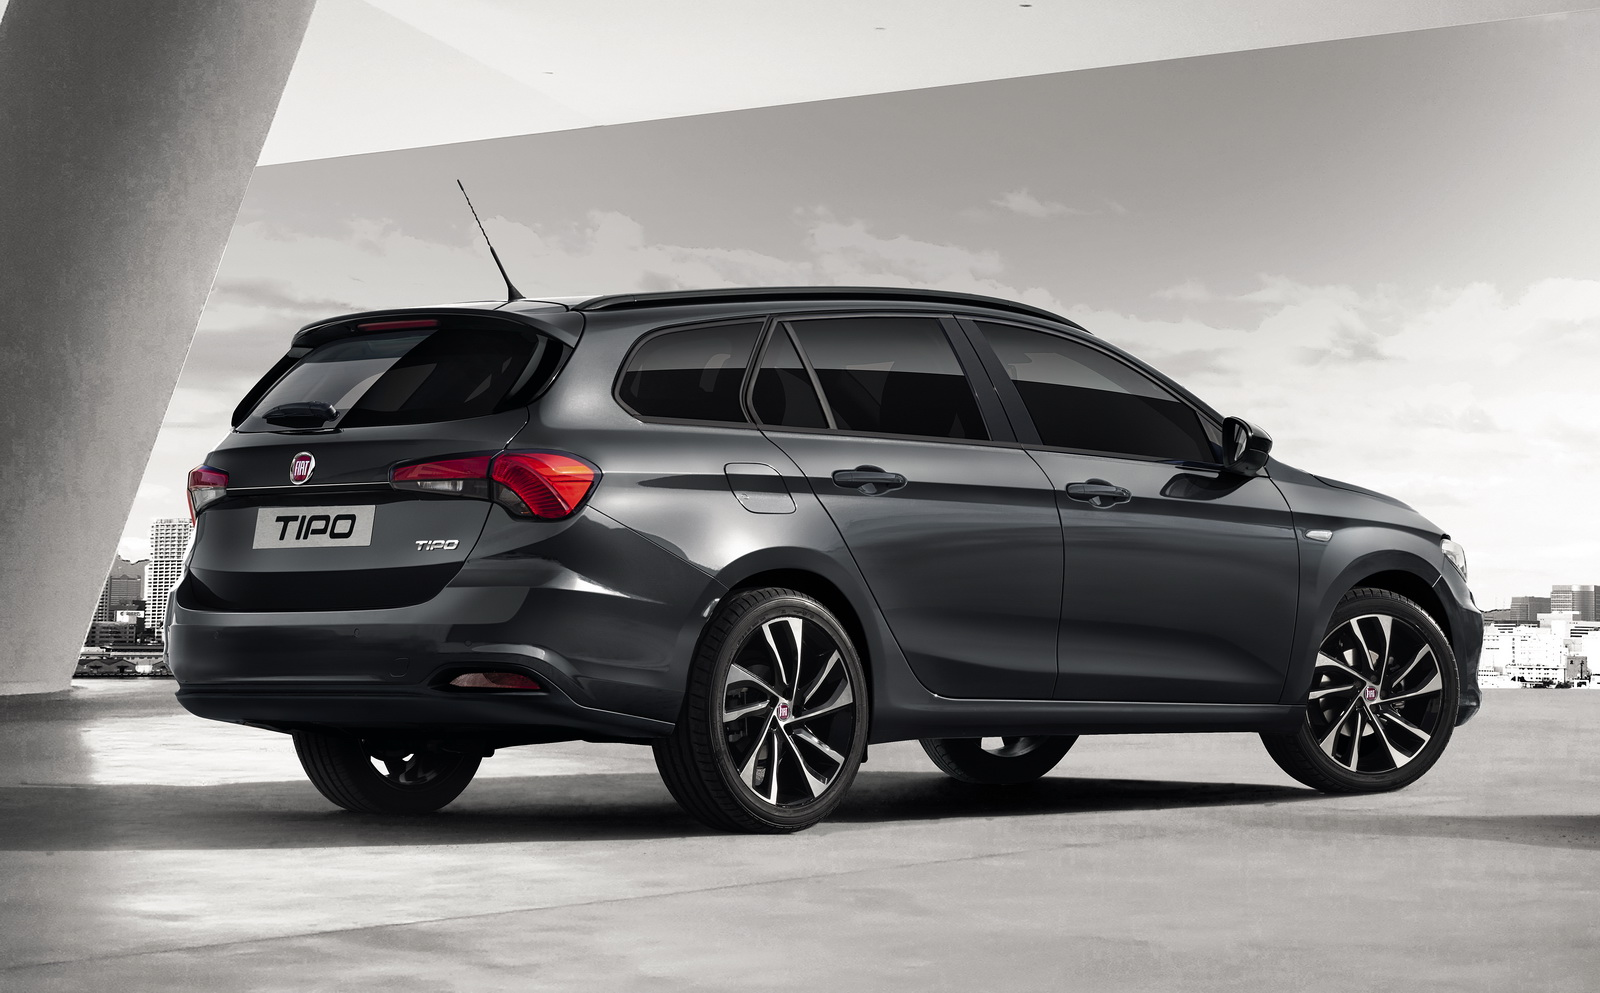 new fiat tipo s design brings sporty style and more kit 22 pics carscoops. Black Bedroom Furniture Sets. Home Design Ideas